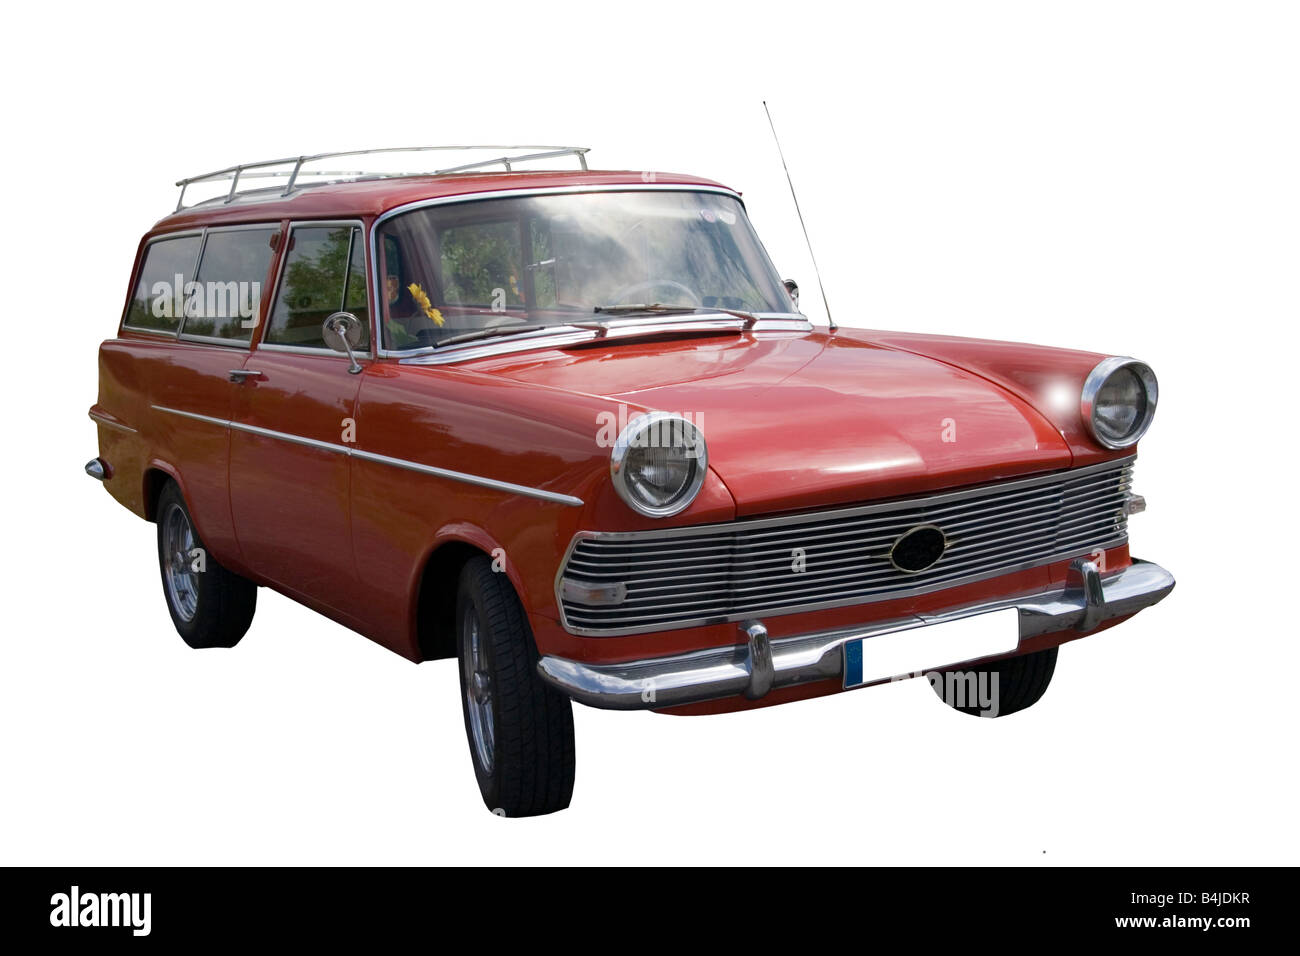 Vintage Opel Rekord German Car Stock Photo Royalty Free